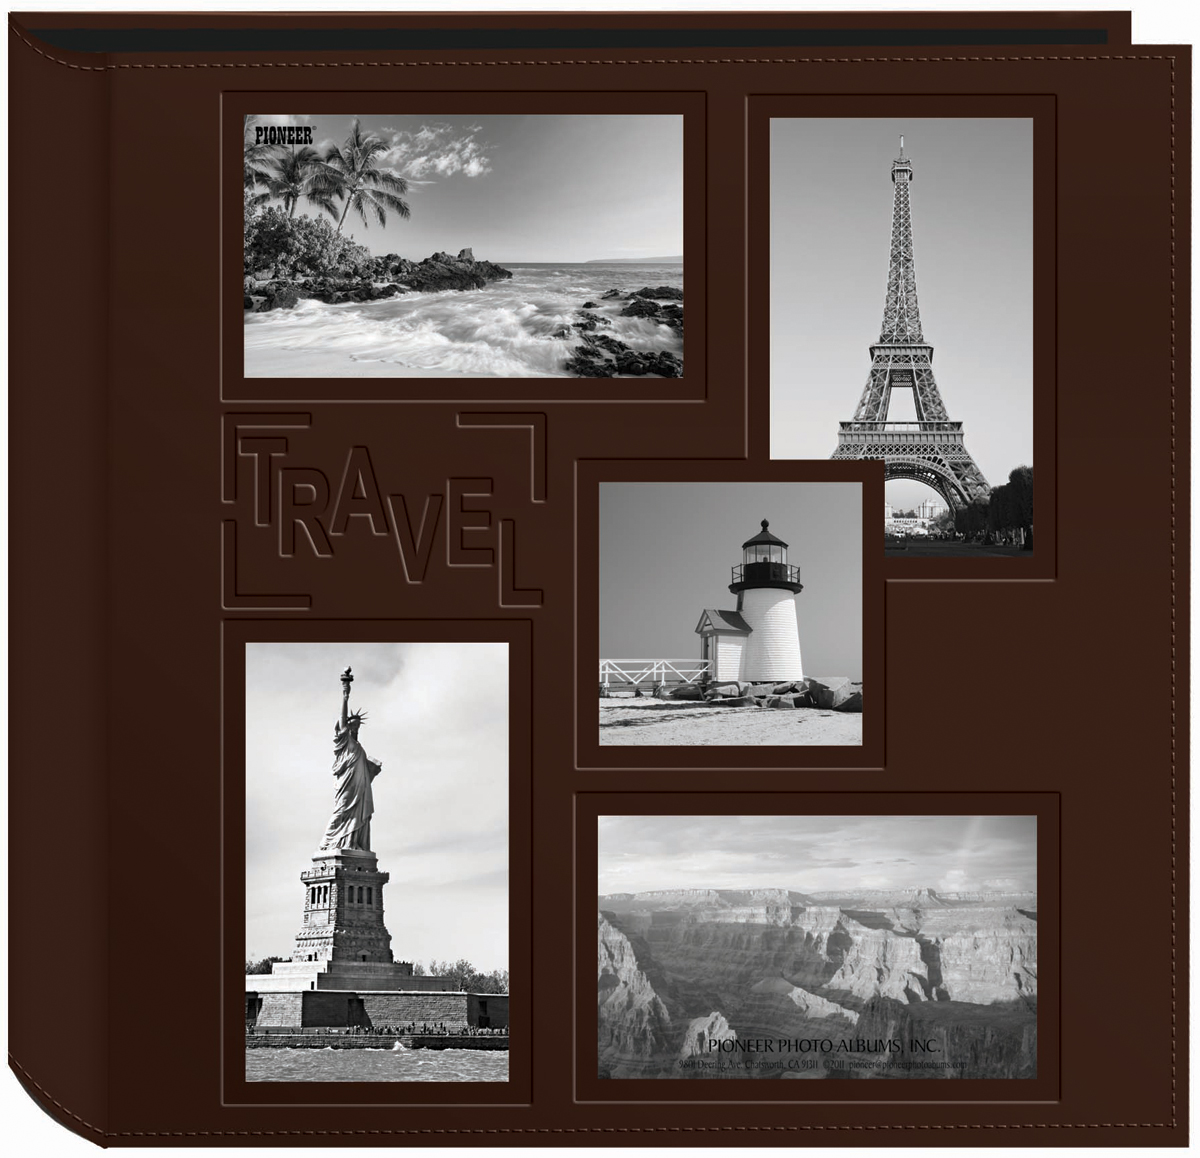 Pioneer 5-Up Sewn Embossed Collage Frame Photo Album 12X12-Travel